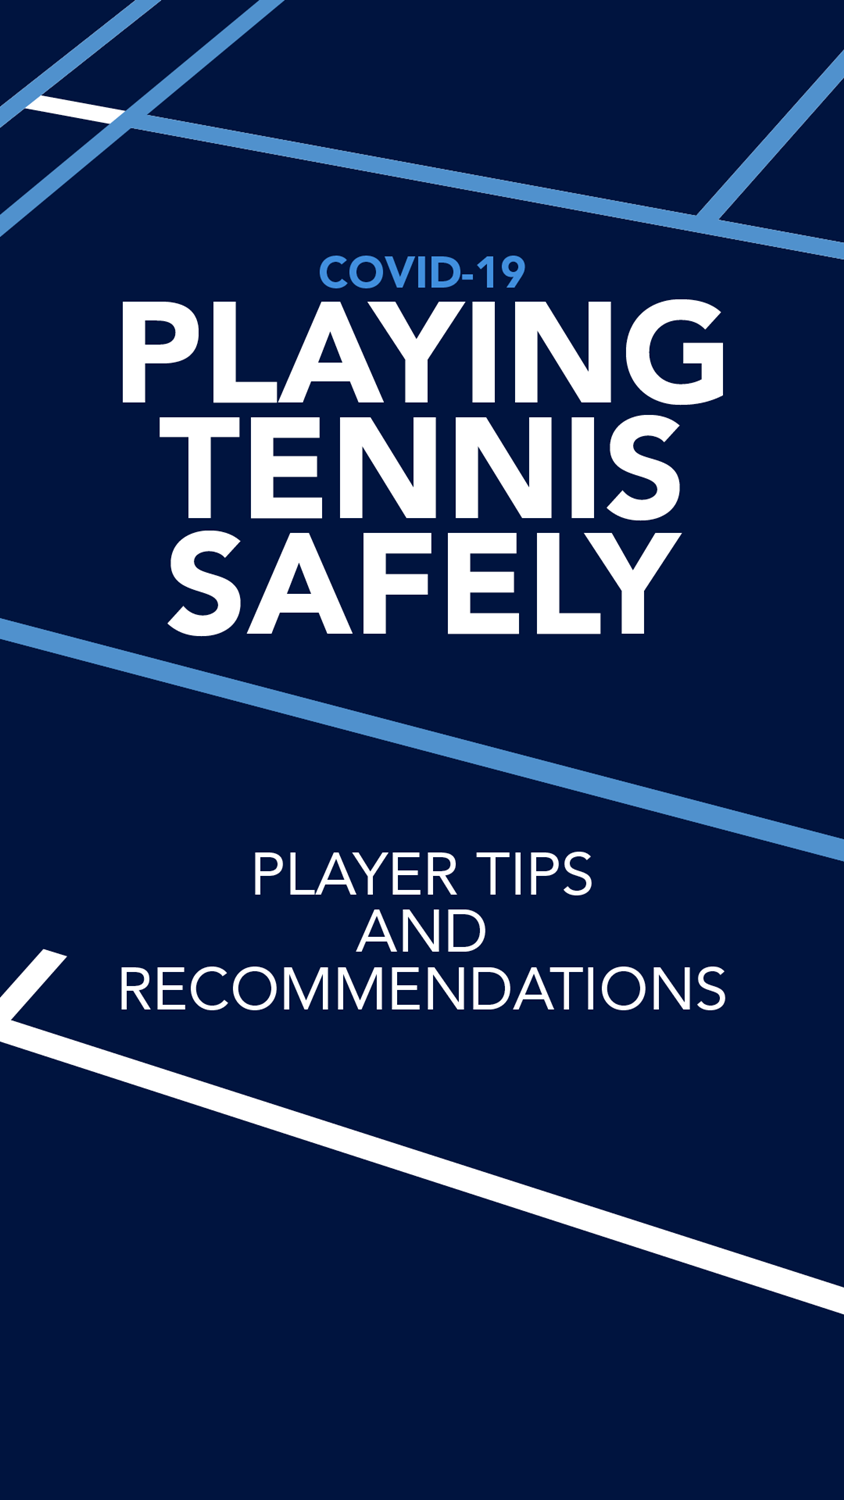 18266_USTA_COVID19_PlayingTennisSafely-IG_Story